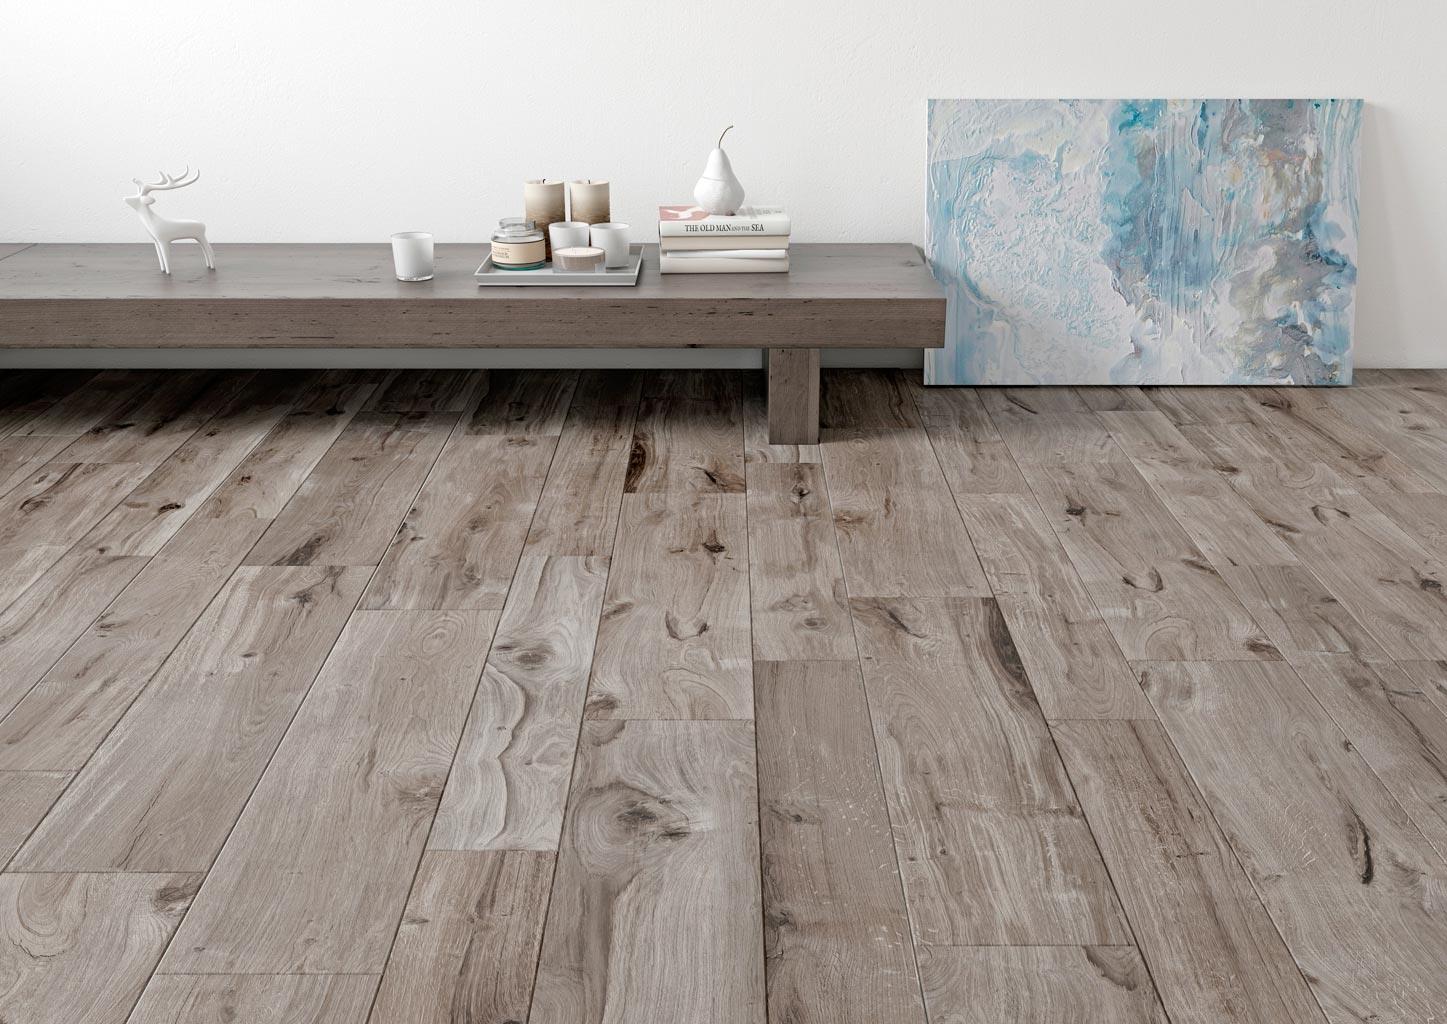 briccole-wood-grey-zzxbl8r image 2